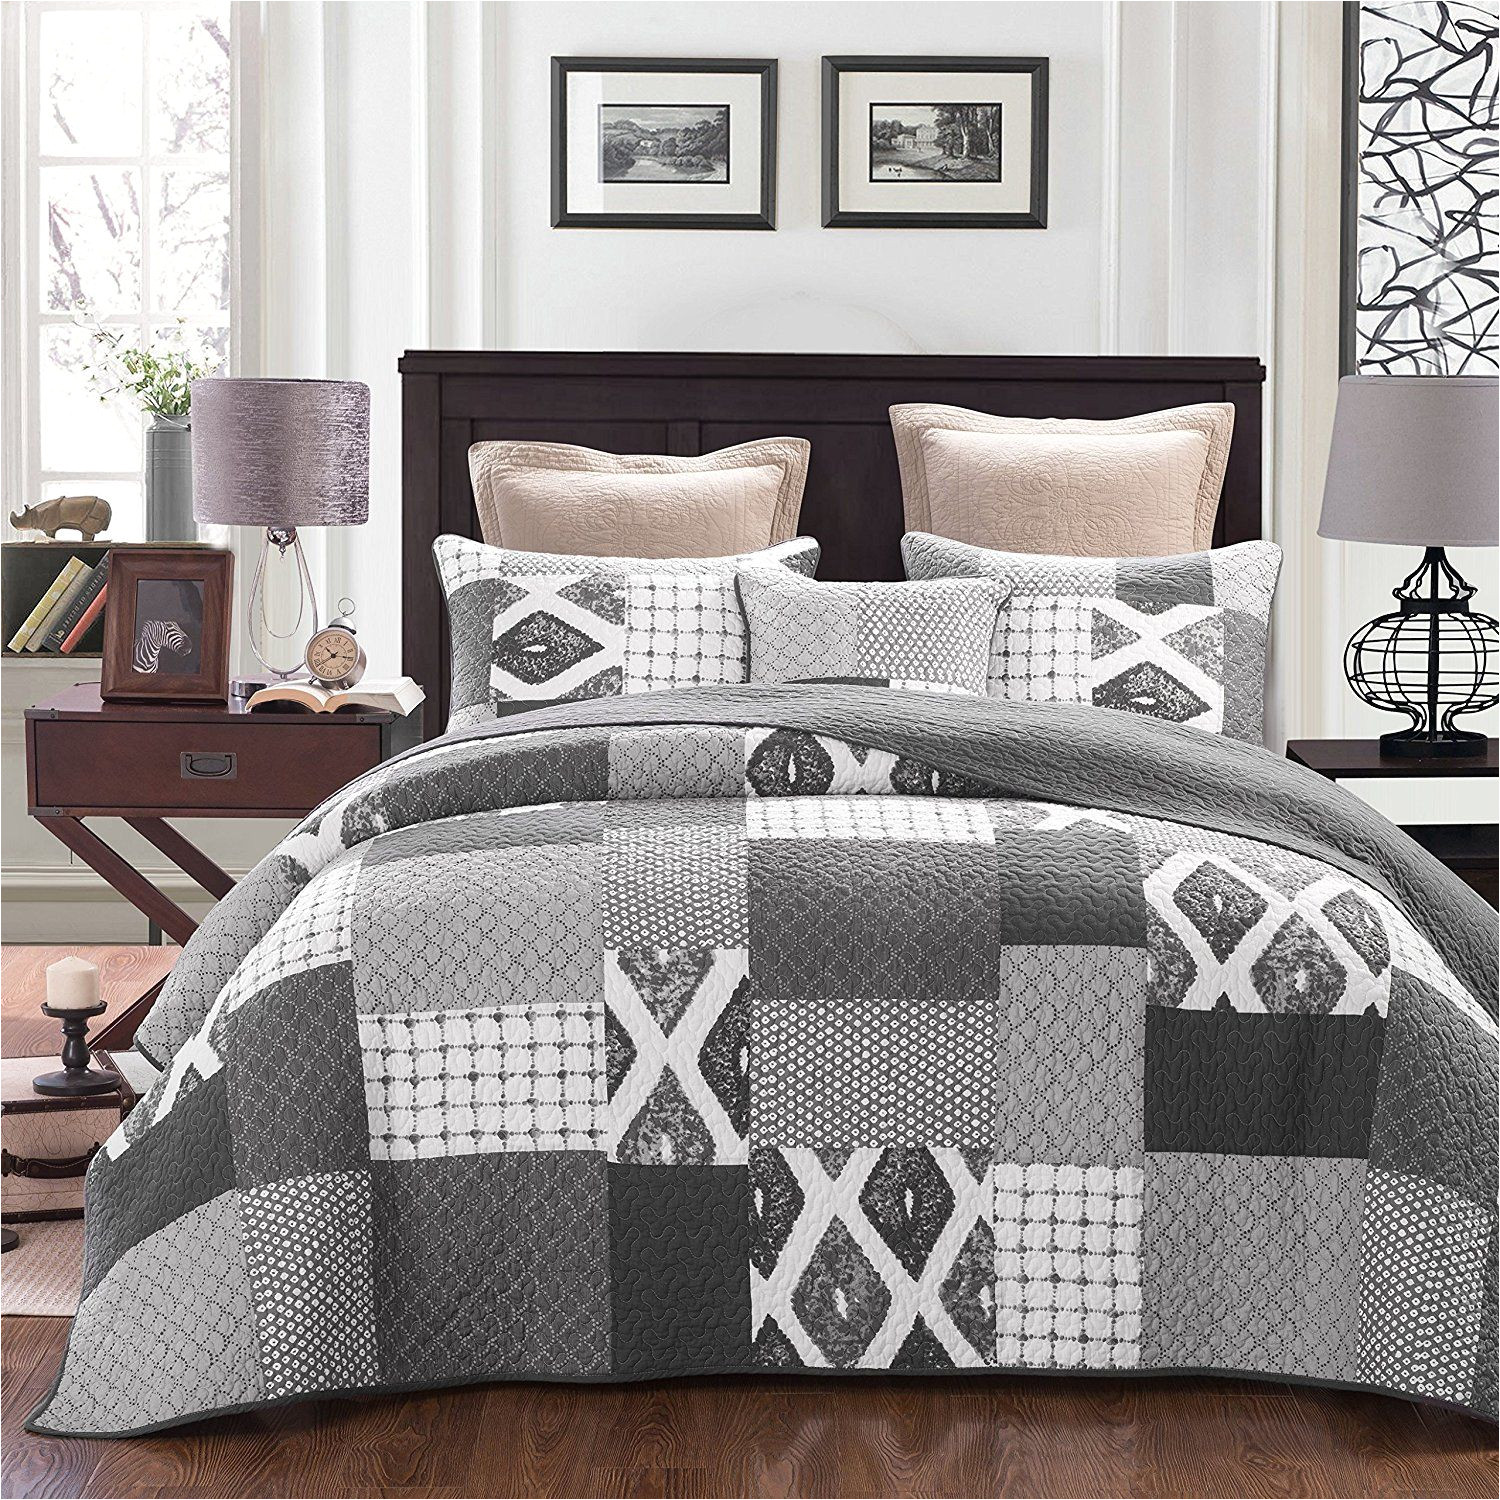 dada bedding classical shades of grey reversible cotton real patchwork quilted coverlet bedspread set